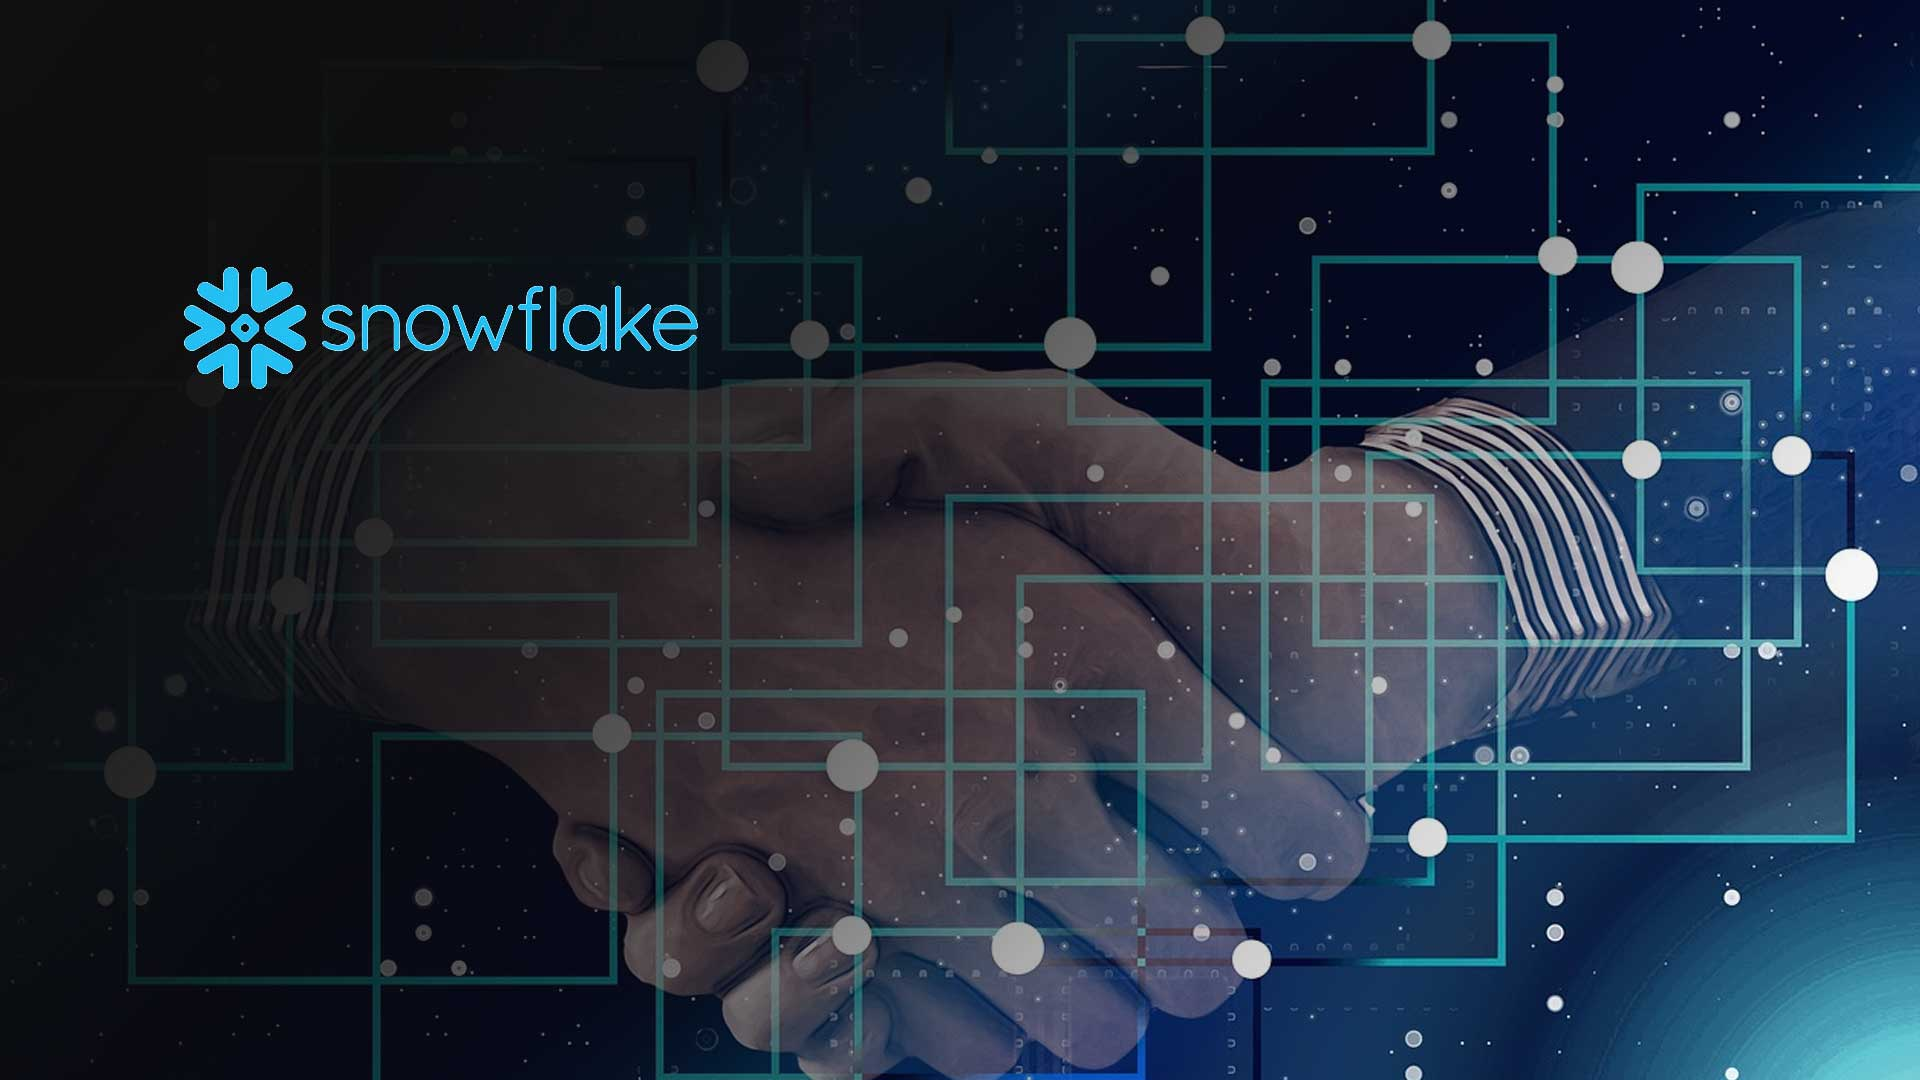 Atlas Systems Expands Partnership With Snowflake